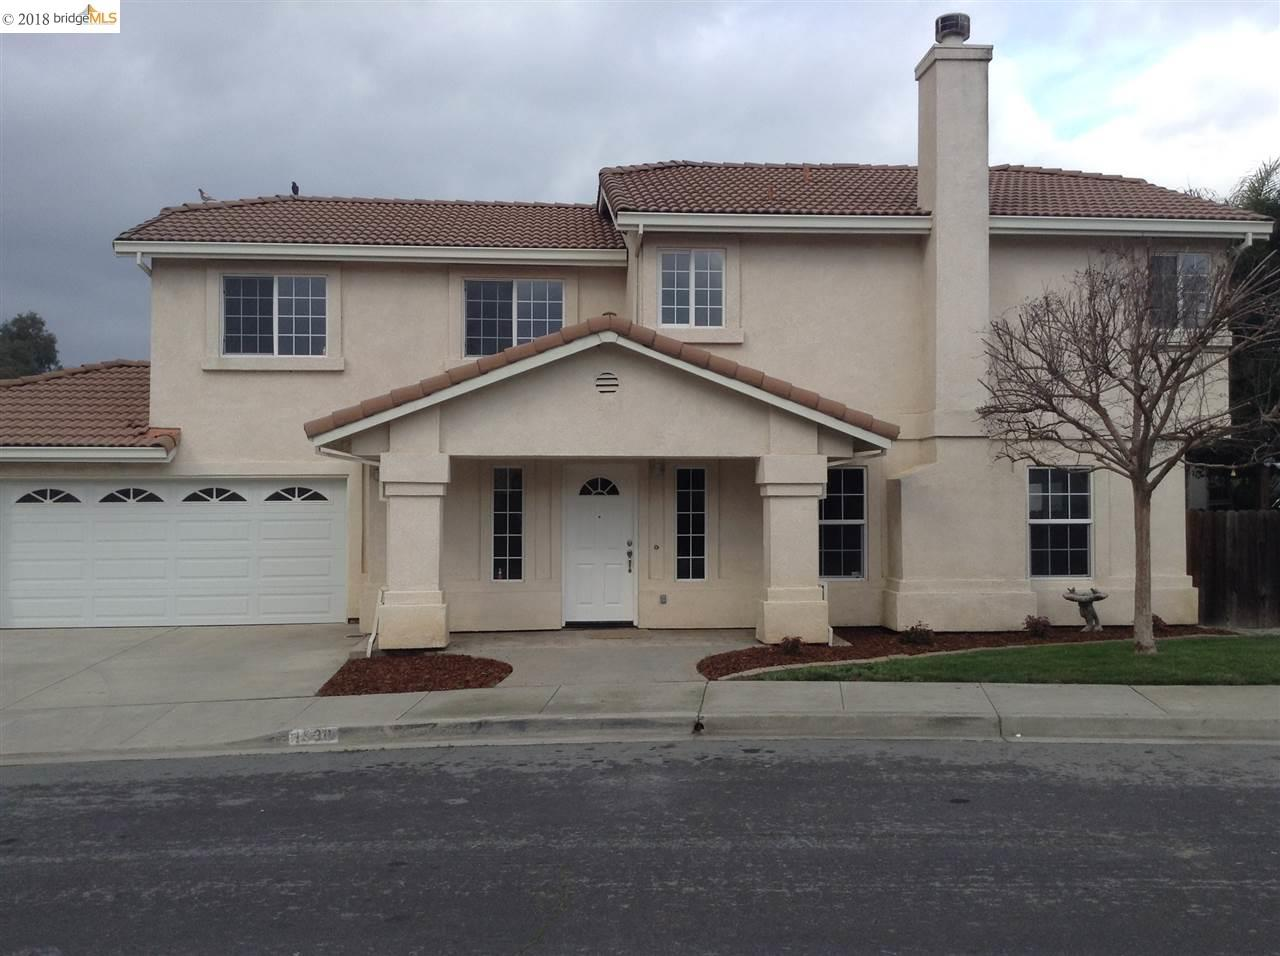 Single Family Home for Rent at 1830 Terrace Drive 1830 Terrace Drive Antioch, California 94509 United States